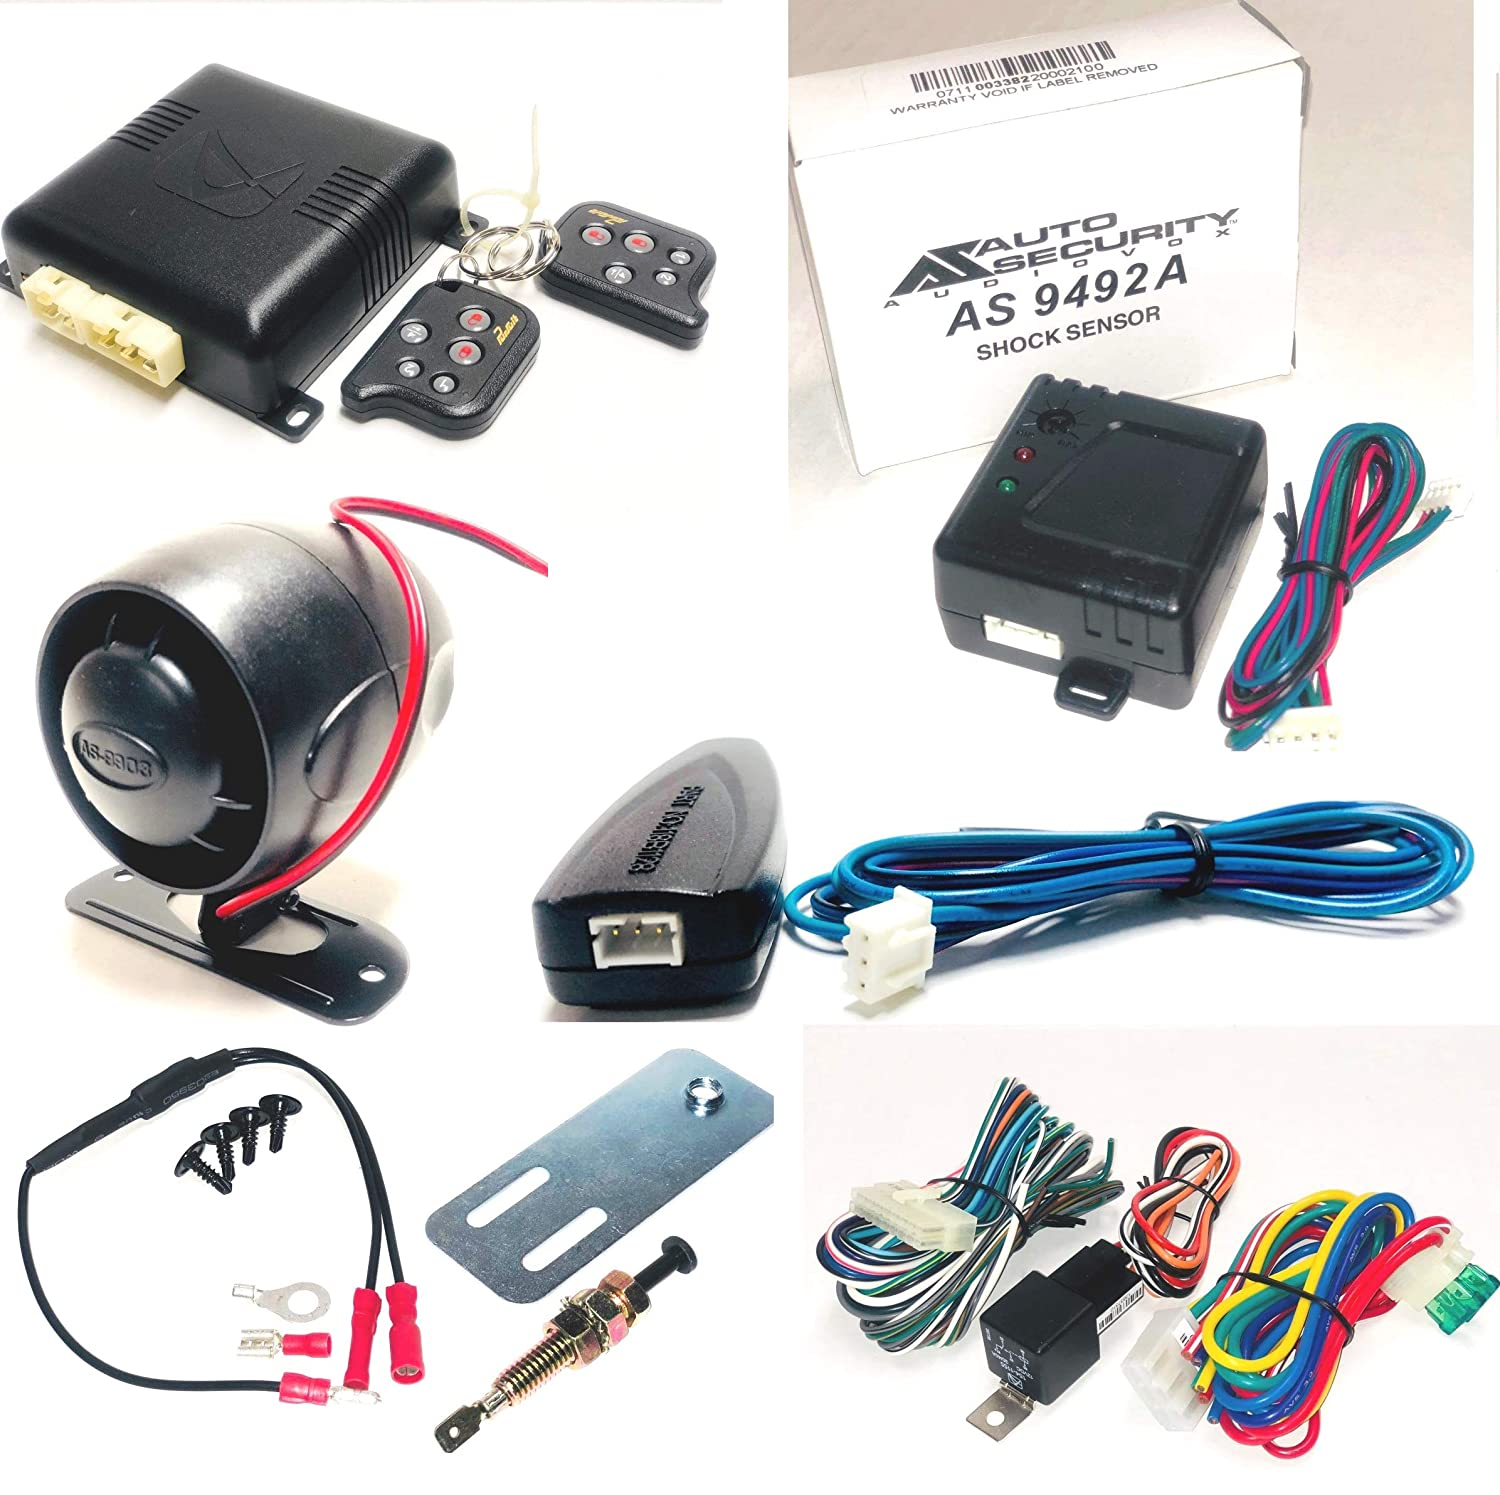 Avital 4105l Avistart Remote Start With Two 4 Button Car Starter For Mazda 5 Controls Cell Phones Accessories